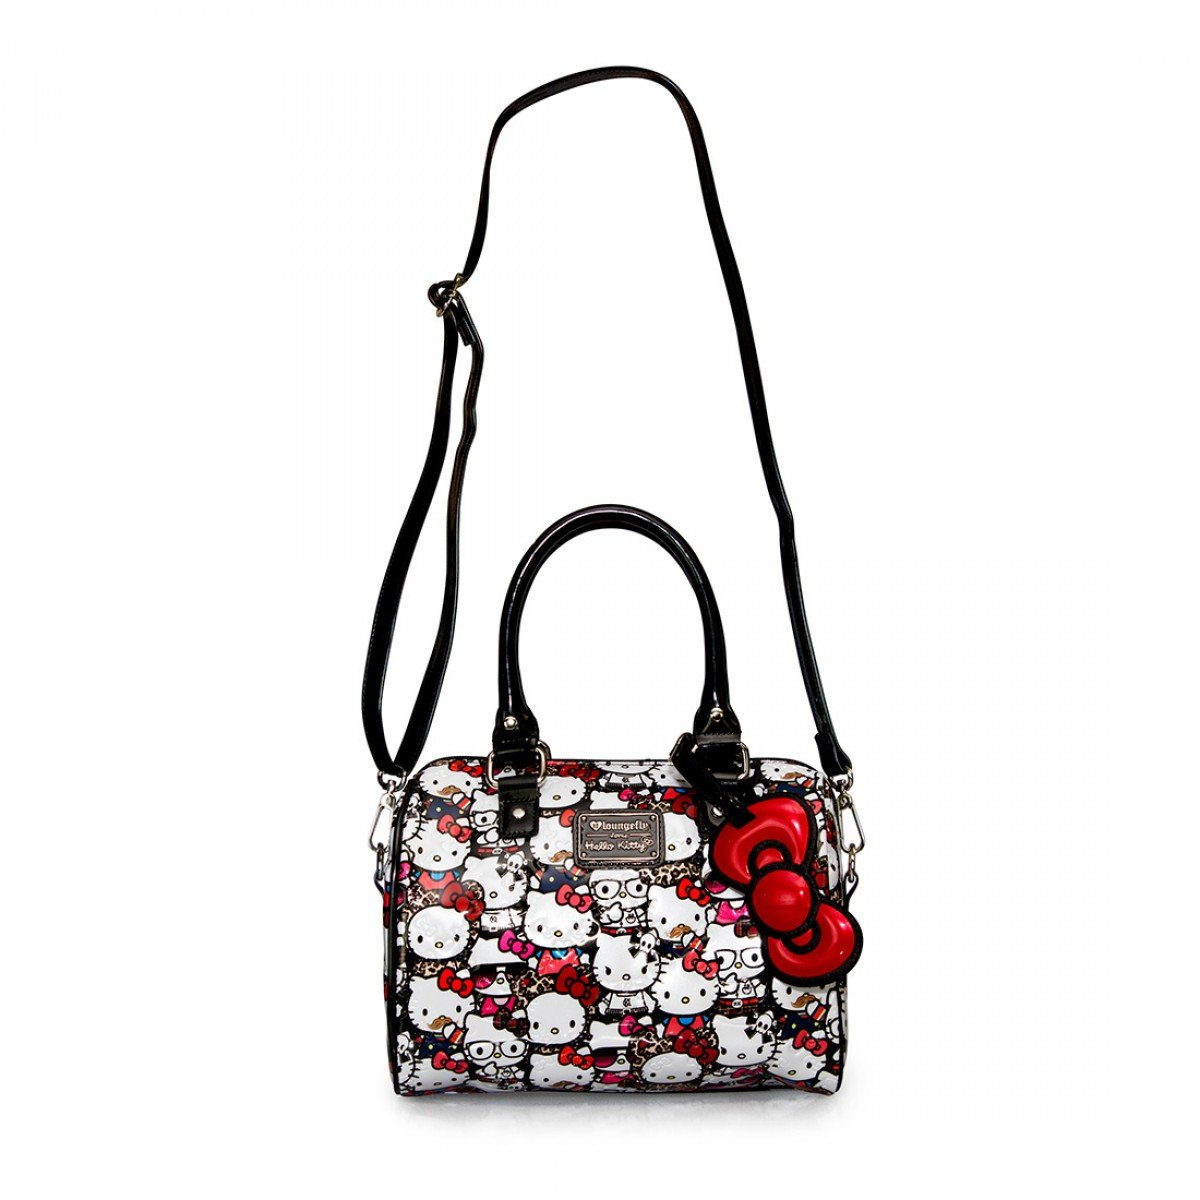 1c9263a237 Loungefly Hello Kitty All Stars Embossed Mini Duffle Cross Body Bag   Amazon.co.uk  Shoes   Bags